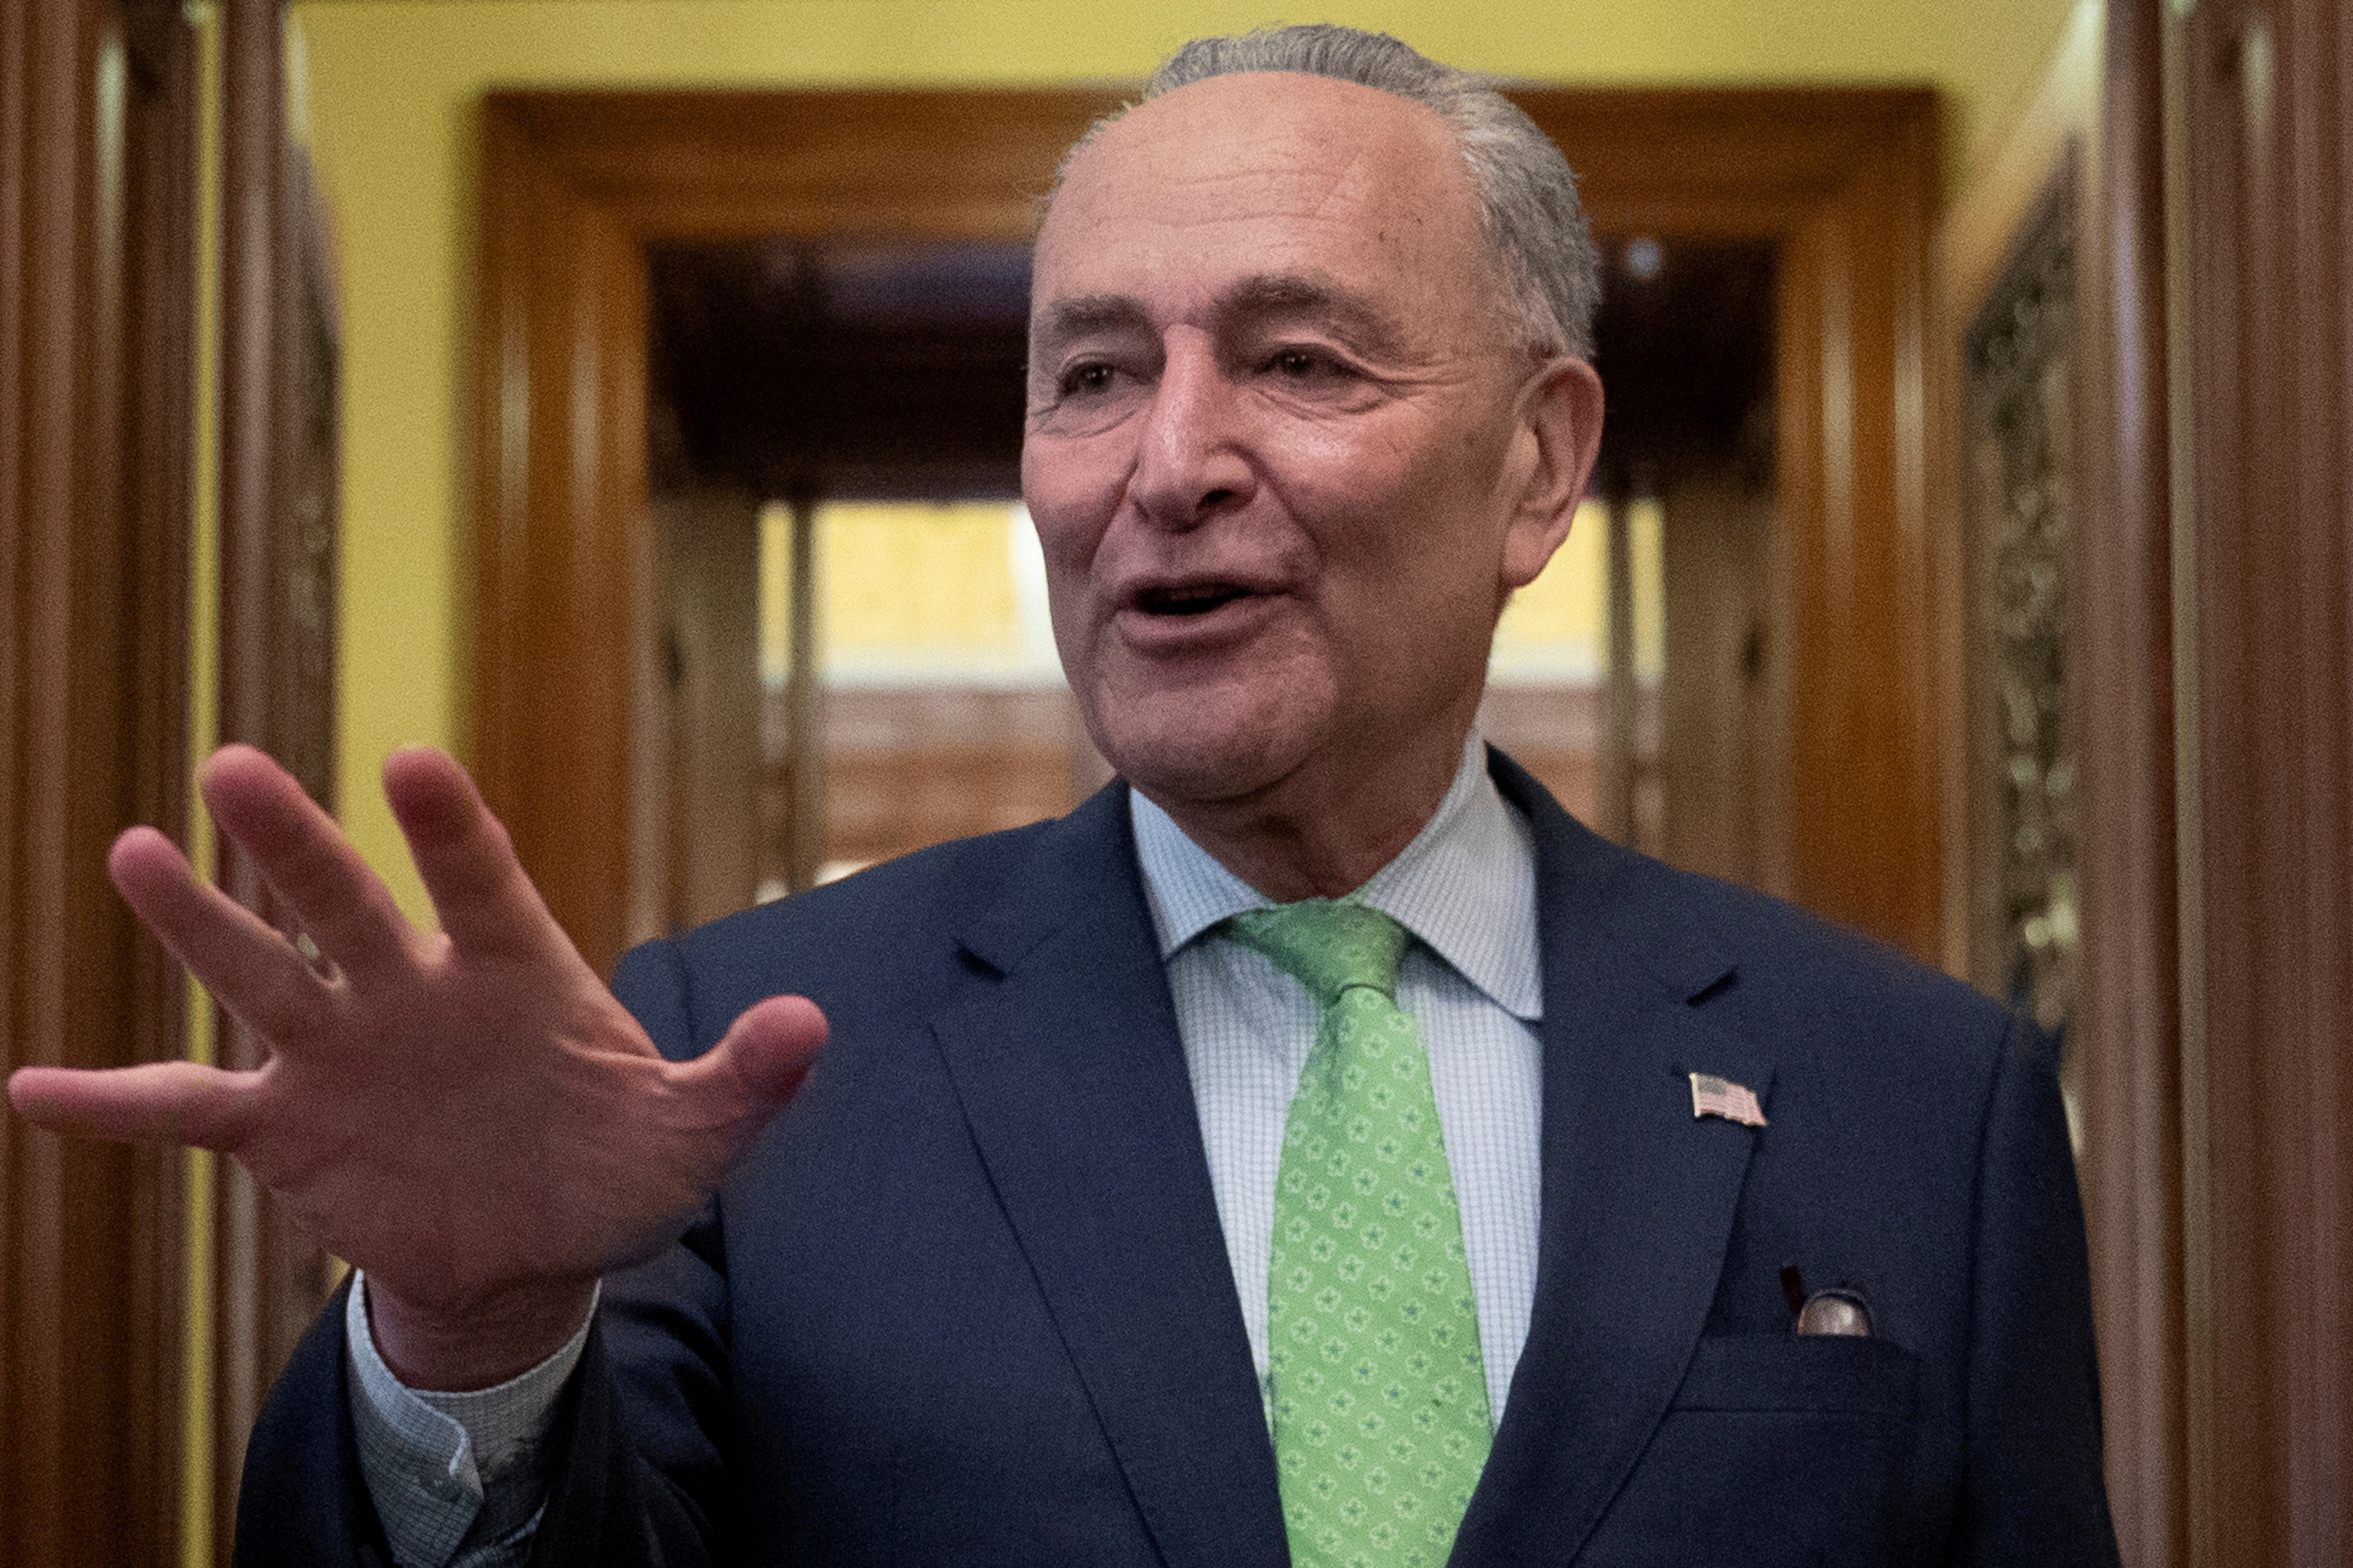 Senate Majority Leader Chuck Schumer (D-NY) speaks to news reporters following the announcement of a bipartisan deal on infrastructure, on Capitol Hill in Washington, U.S., June 24, 2021.  REUTERS/Tom Brenner/File Photo